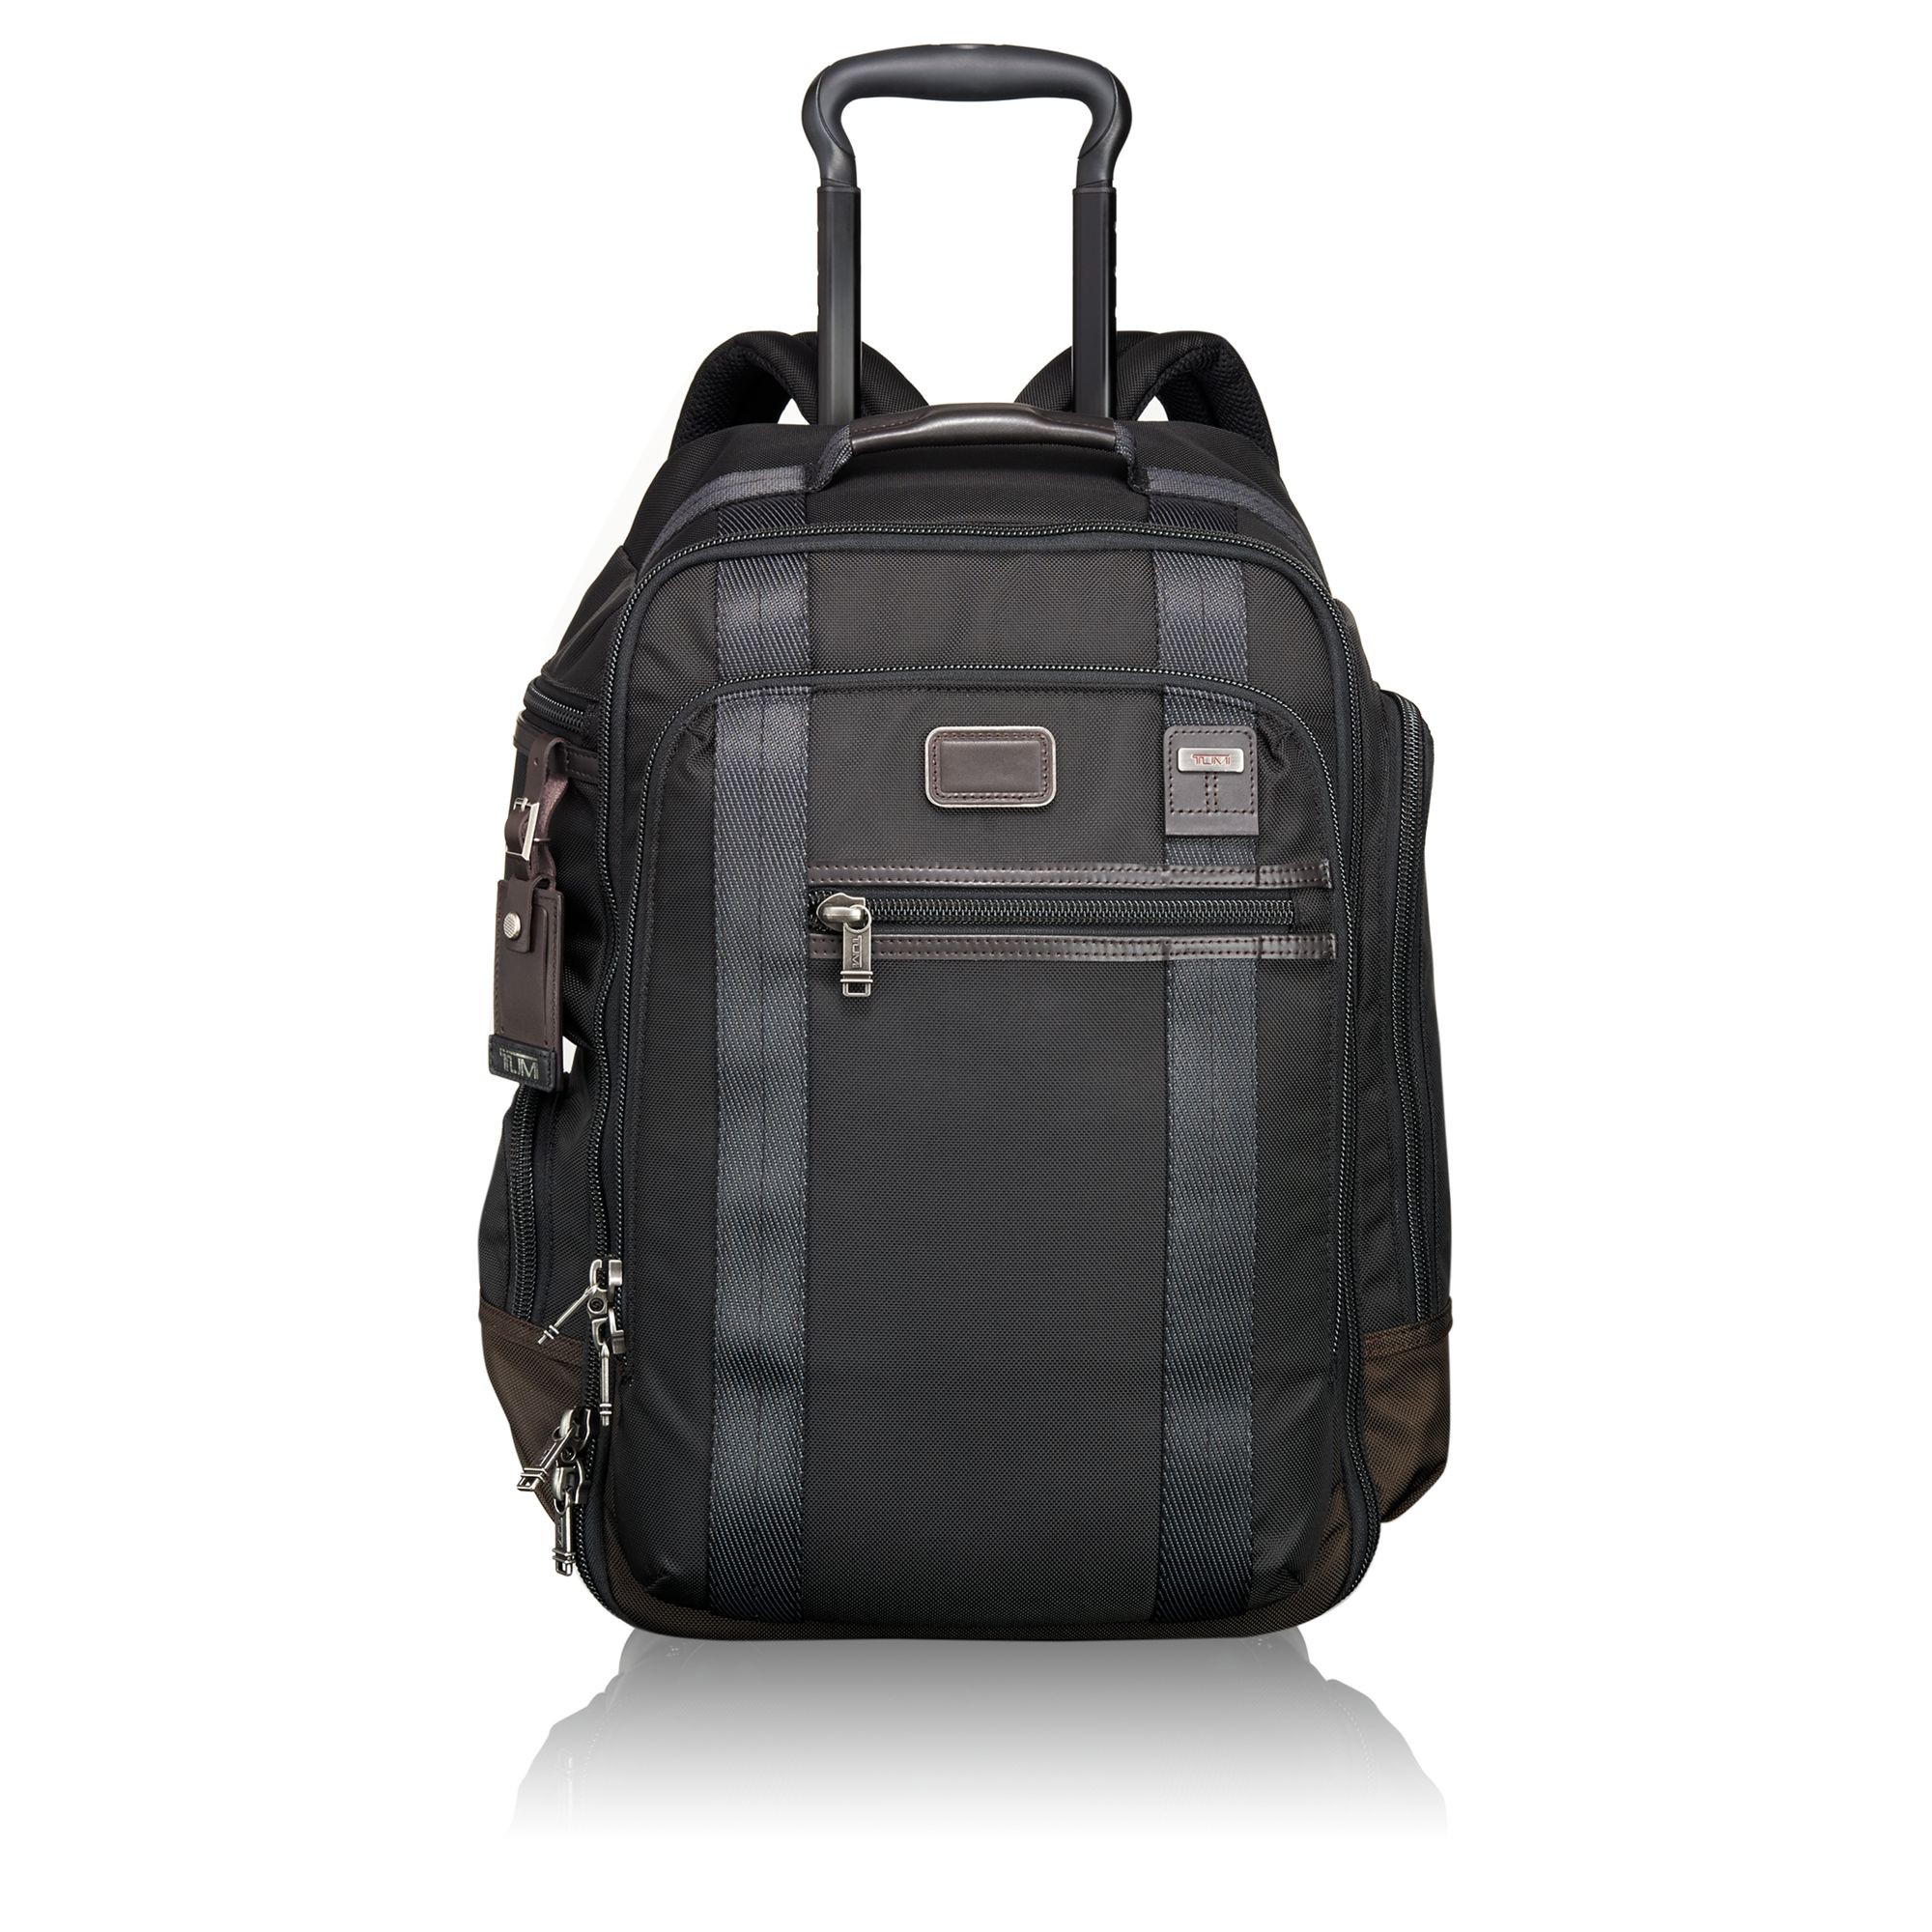 Knox Backpack Tumi | Tumi Backpack Review | Tumi Alpha Bravo